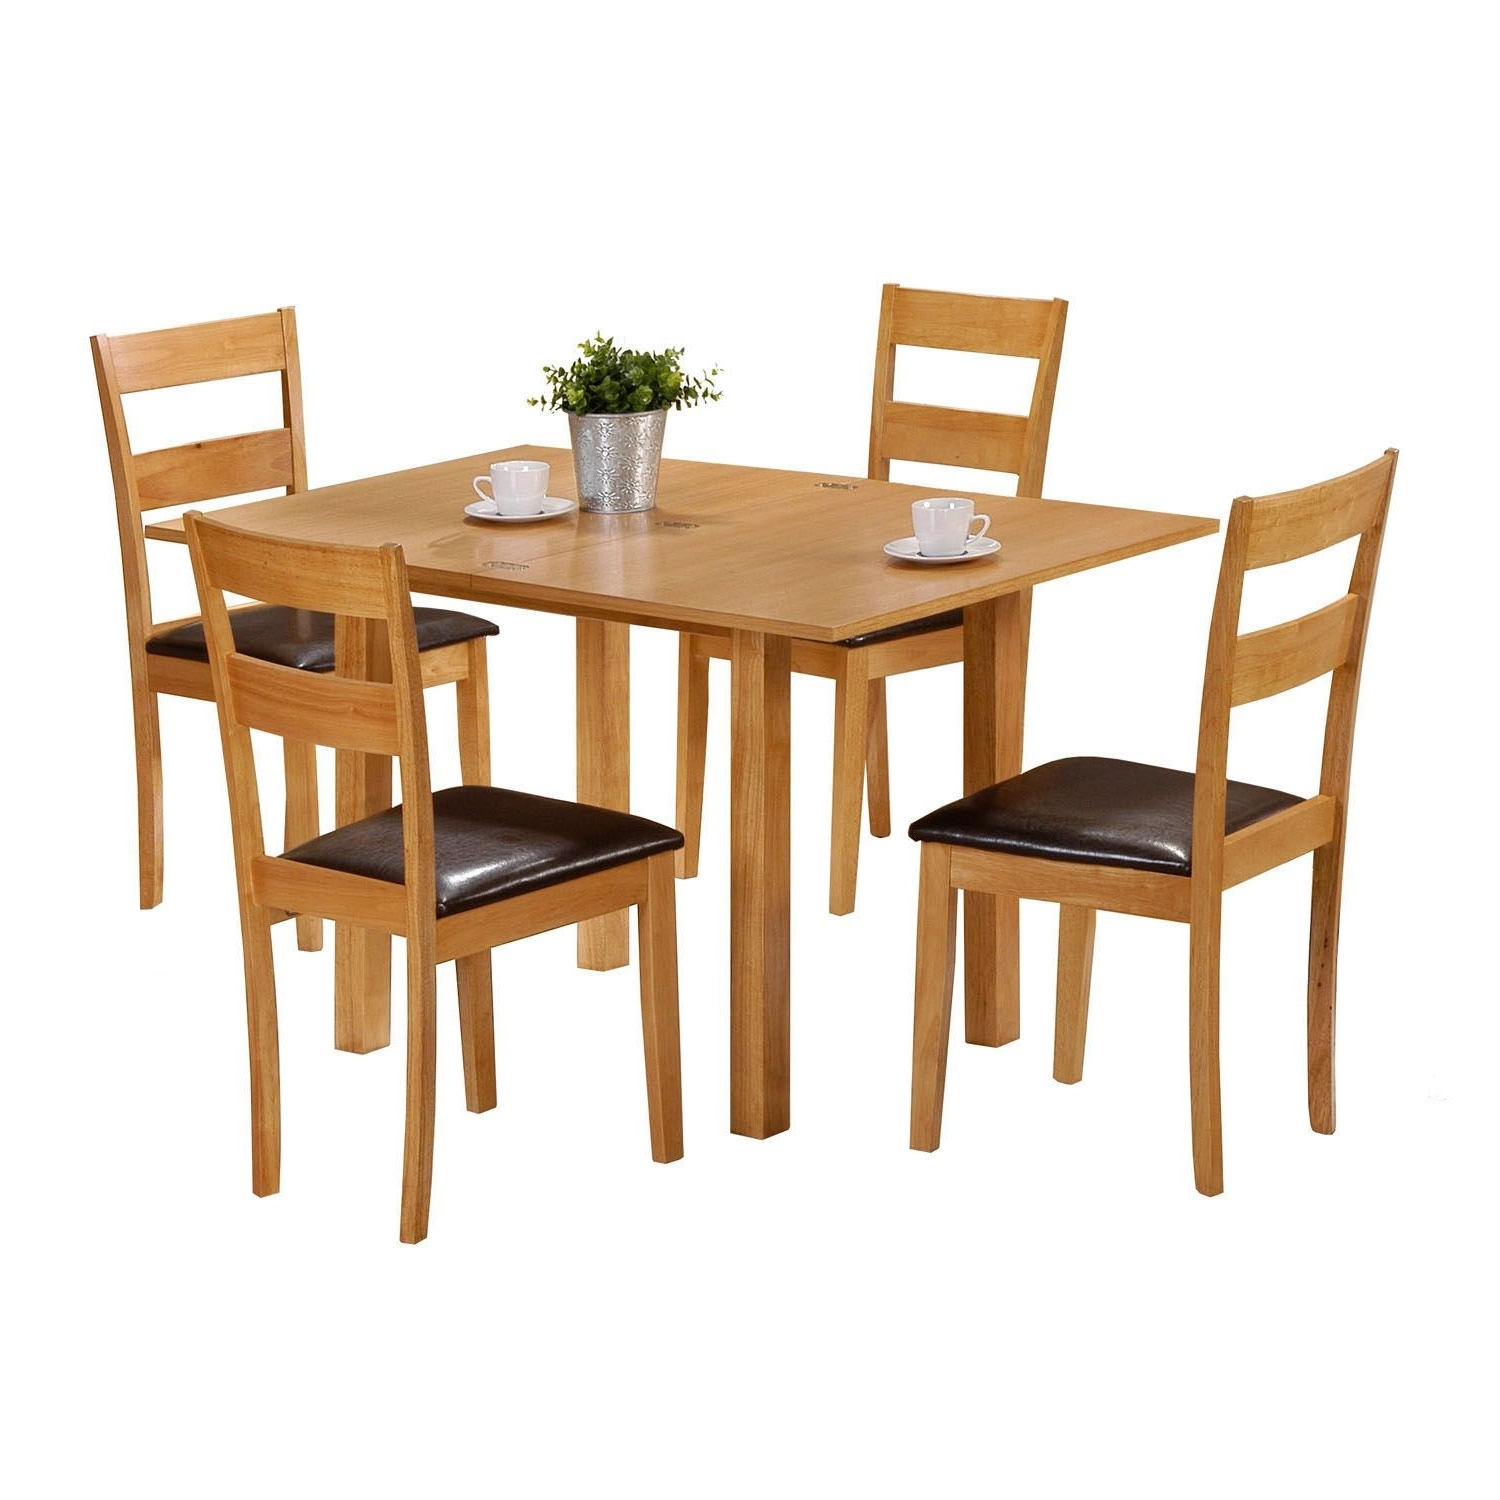 Pinterest In Latest 4 Seat Dining Tables (Gallery 5 of 25)